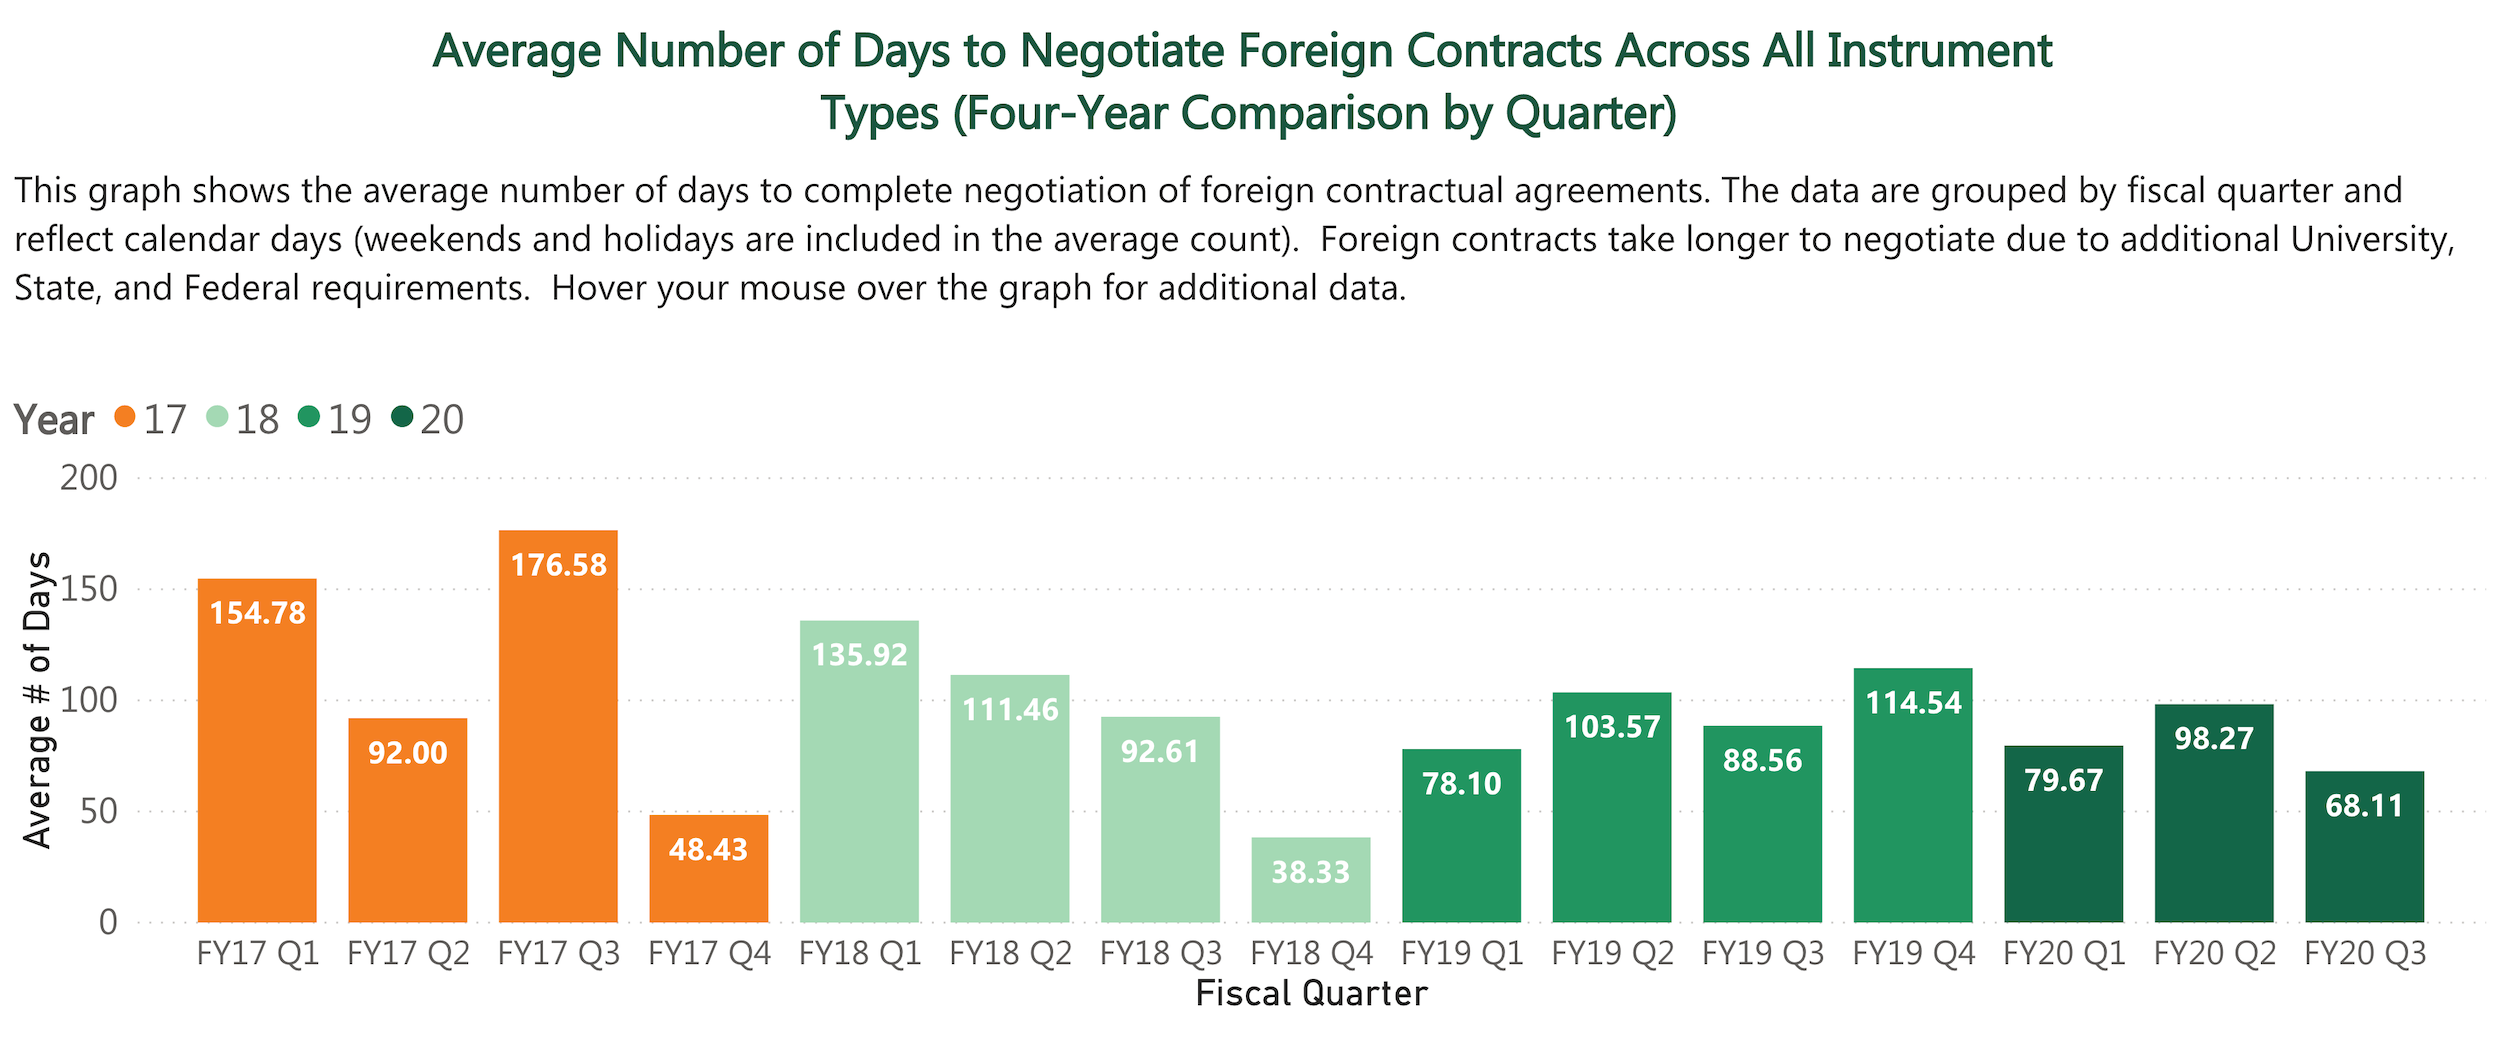 Average Number of Days to Negotiate Foreign Contracts Across All Instrument Types (Four-Year Comparison by Quarter)